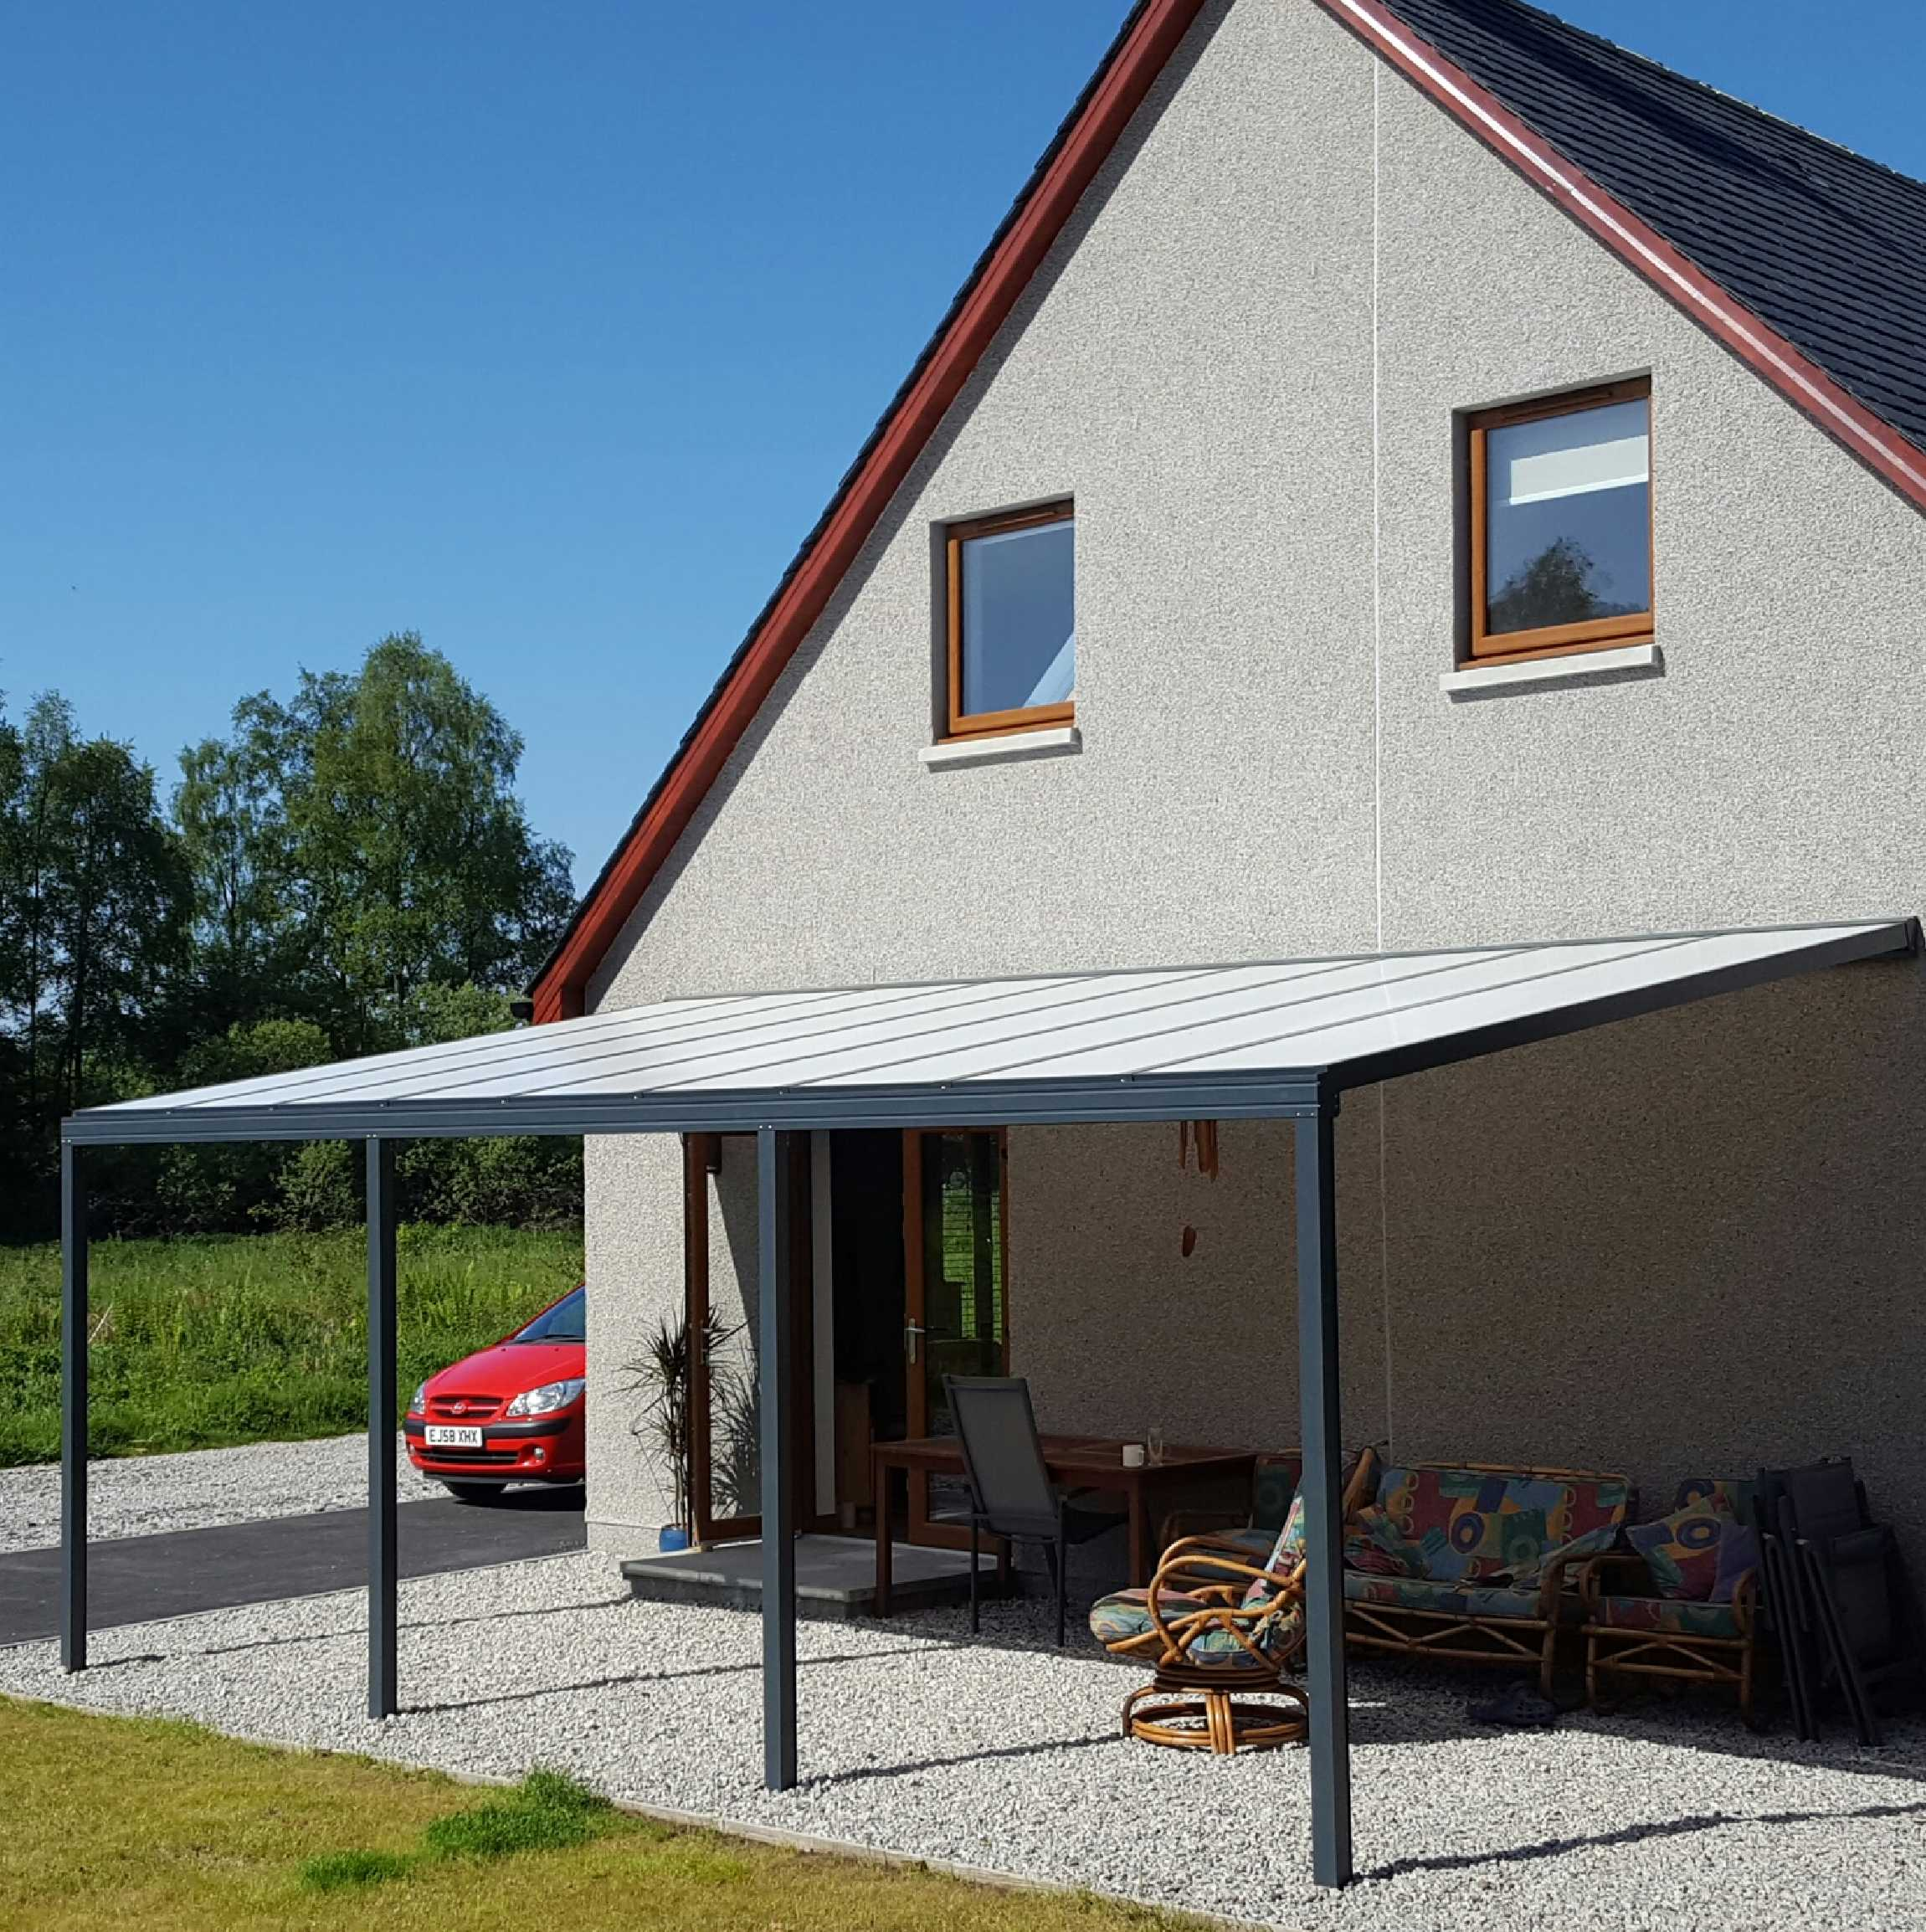 Great selection of Omega Smart Lean-To Canopy, Anthracite Grey, 16mm Polycarbonate Glazing - 4.2m (W) x 4.0m (P), (3) Supporting Posts